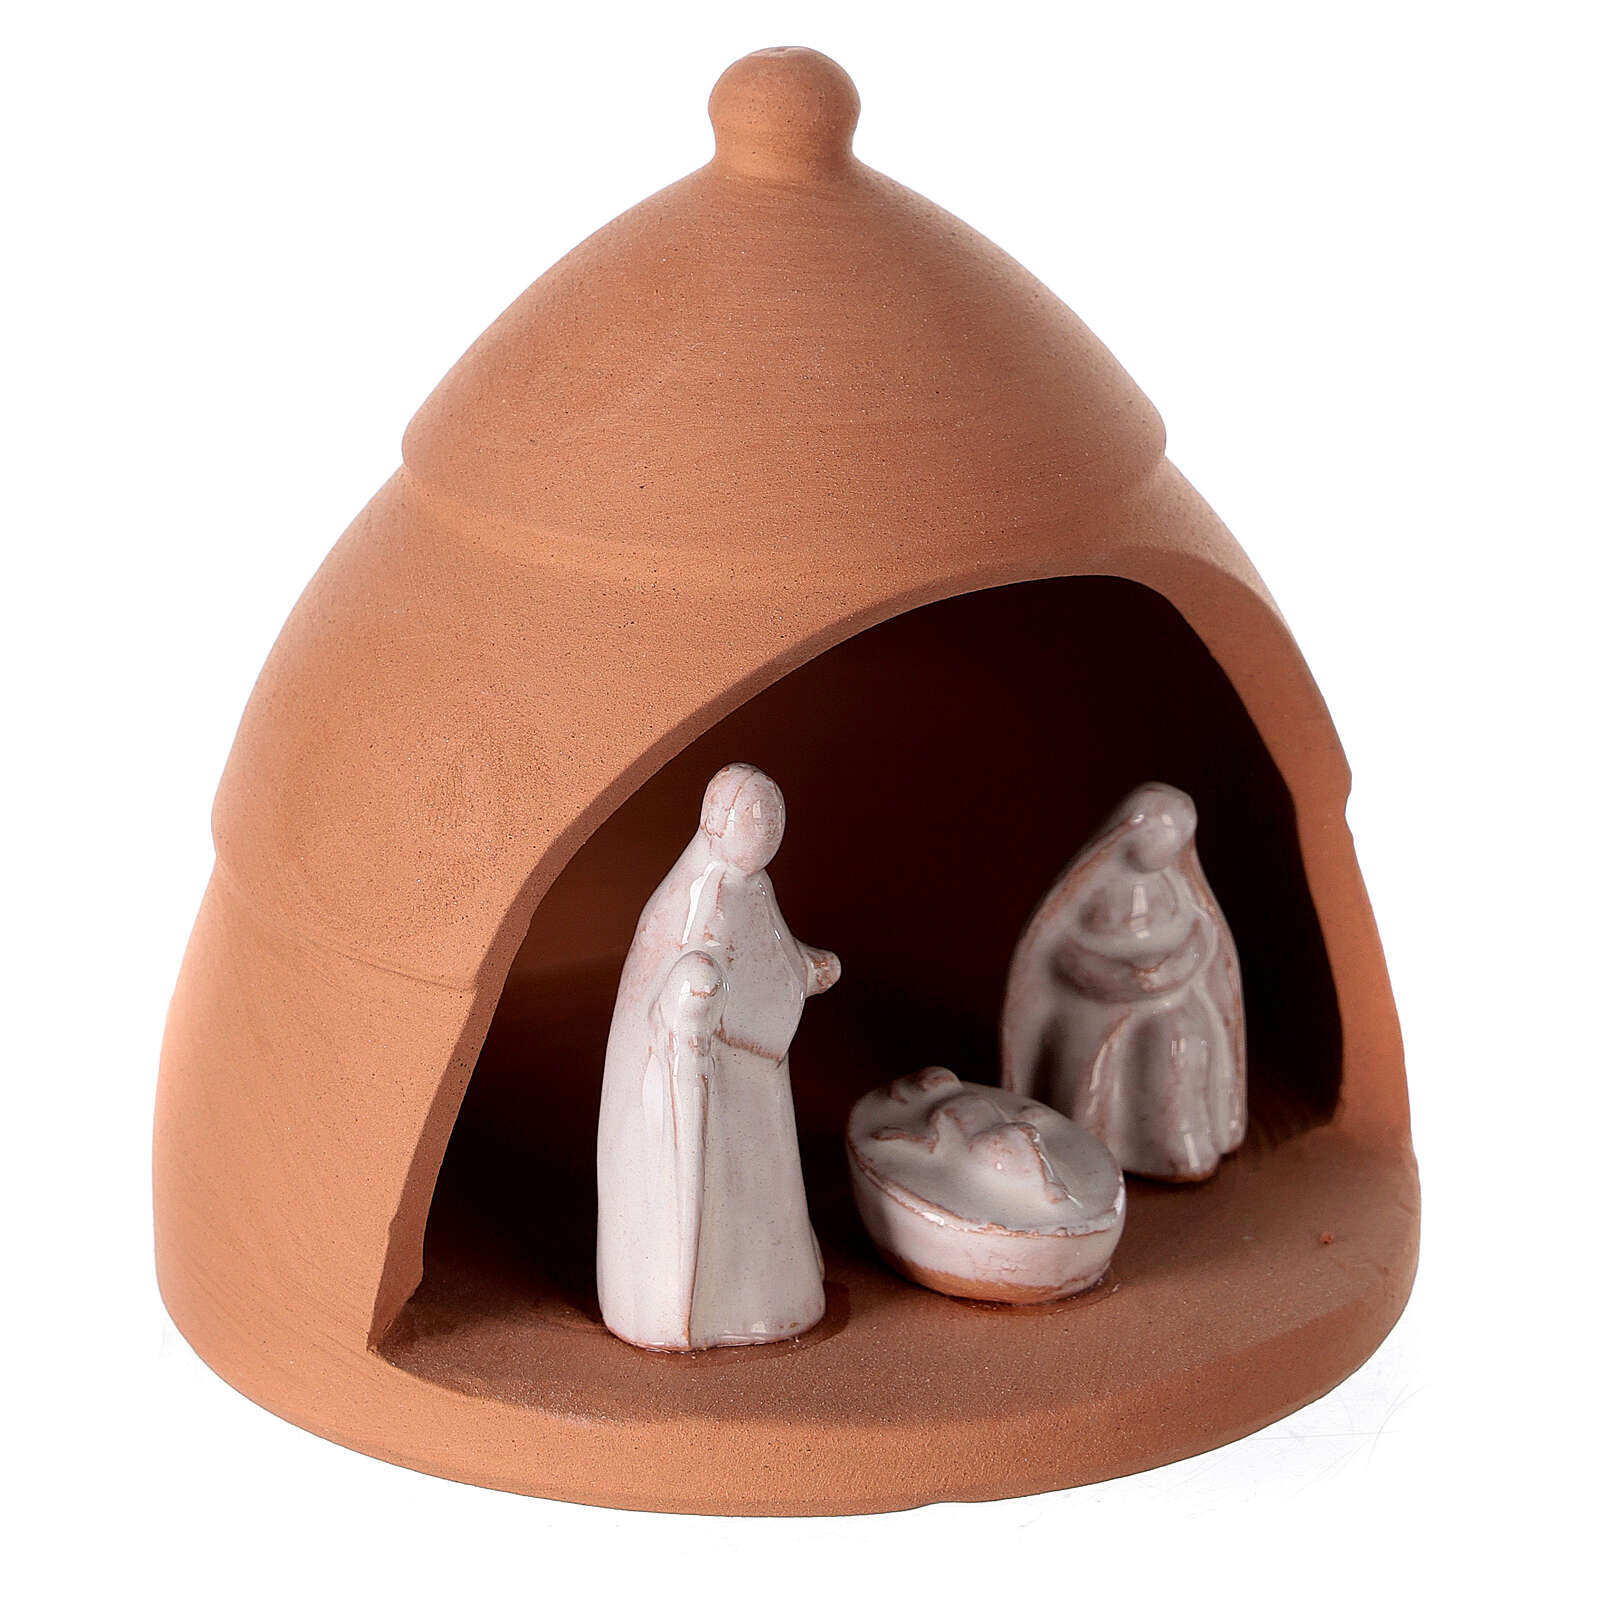 Nativity scene mini pine contrast Deruta Terracotta 10 cm 4